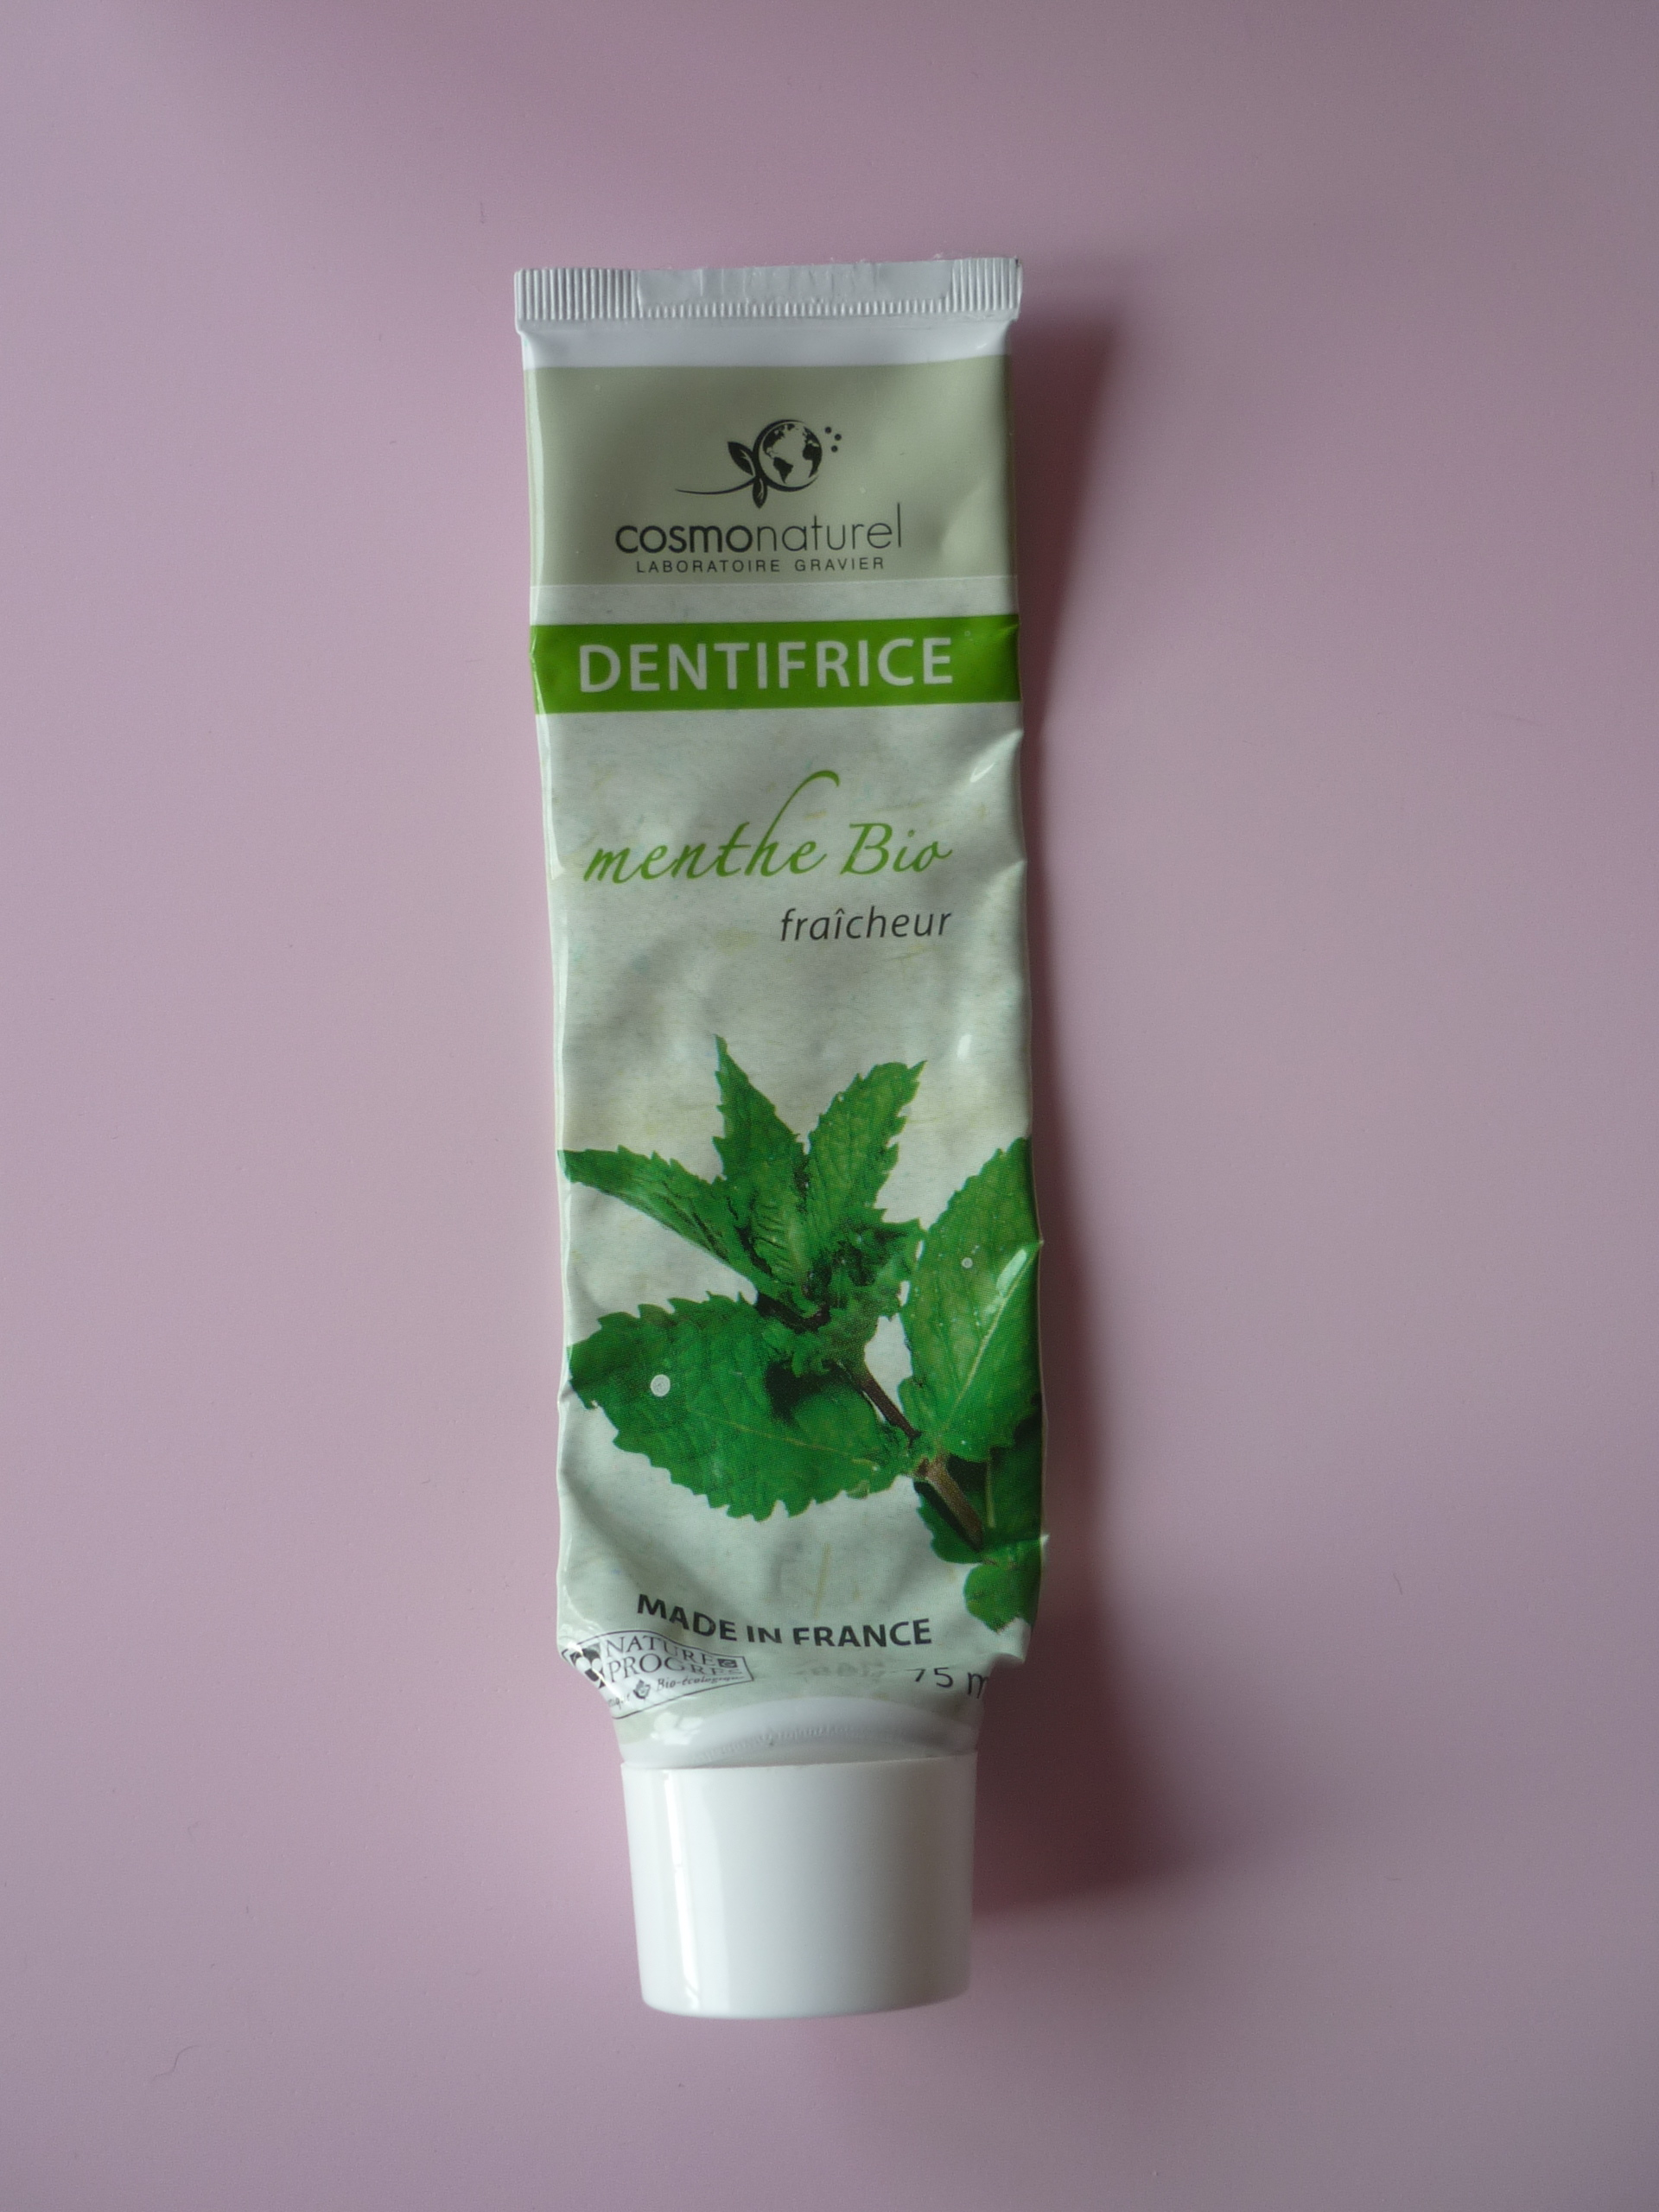 Dentifrice Cosmonaturel